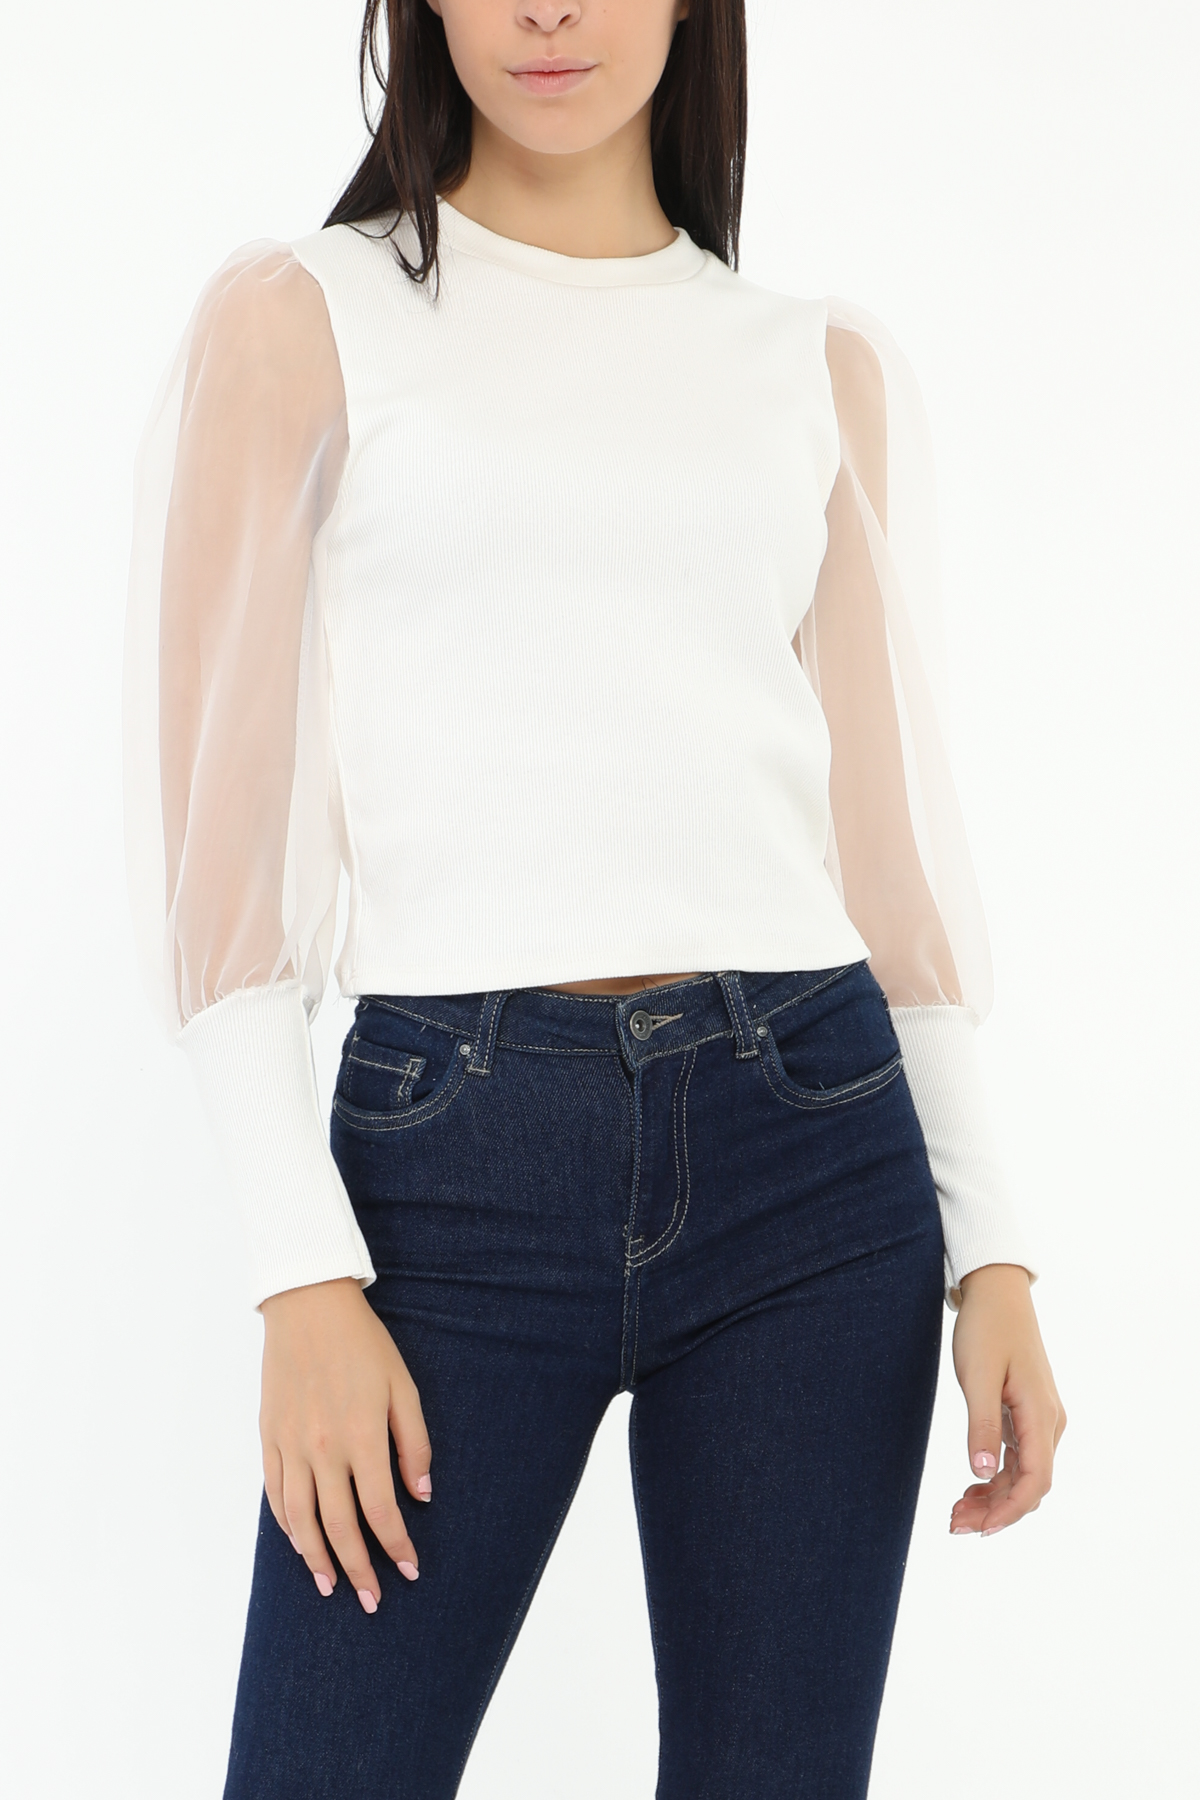 Tops Femme Blanc PROMISE 7105 #c eFashion Paris